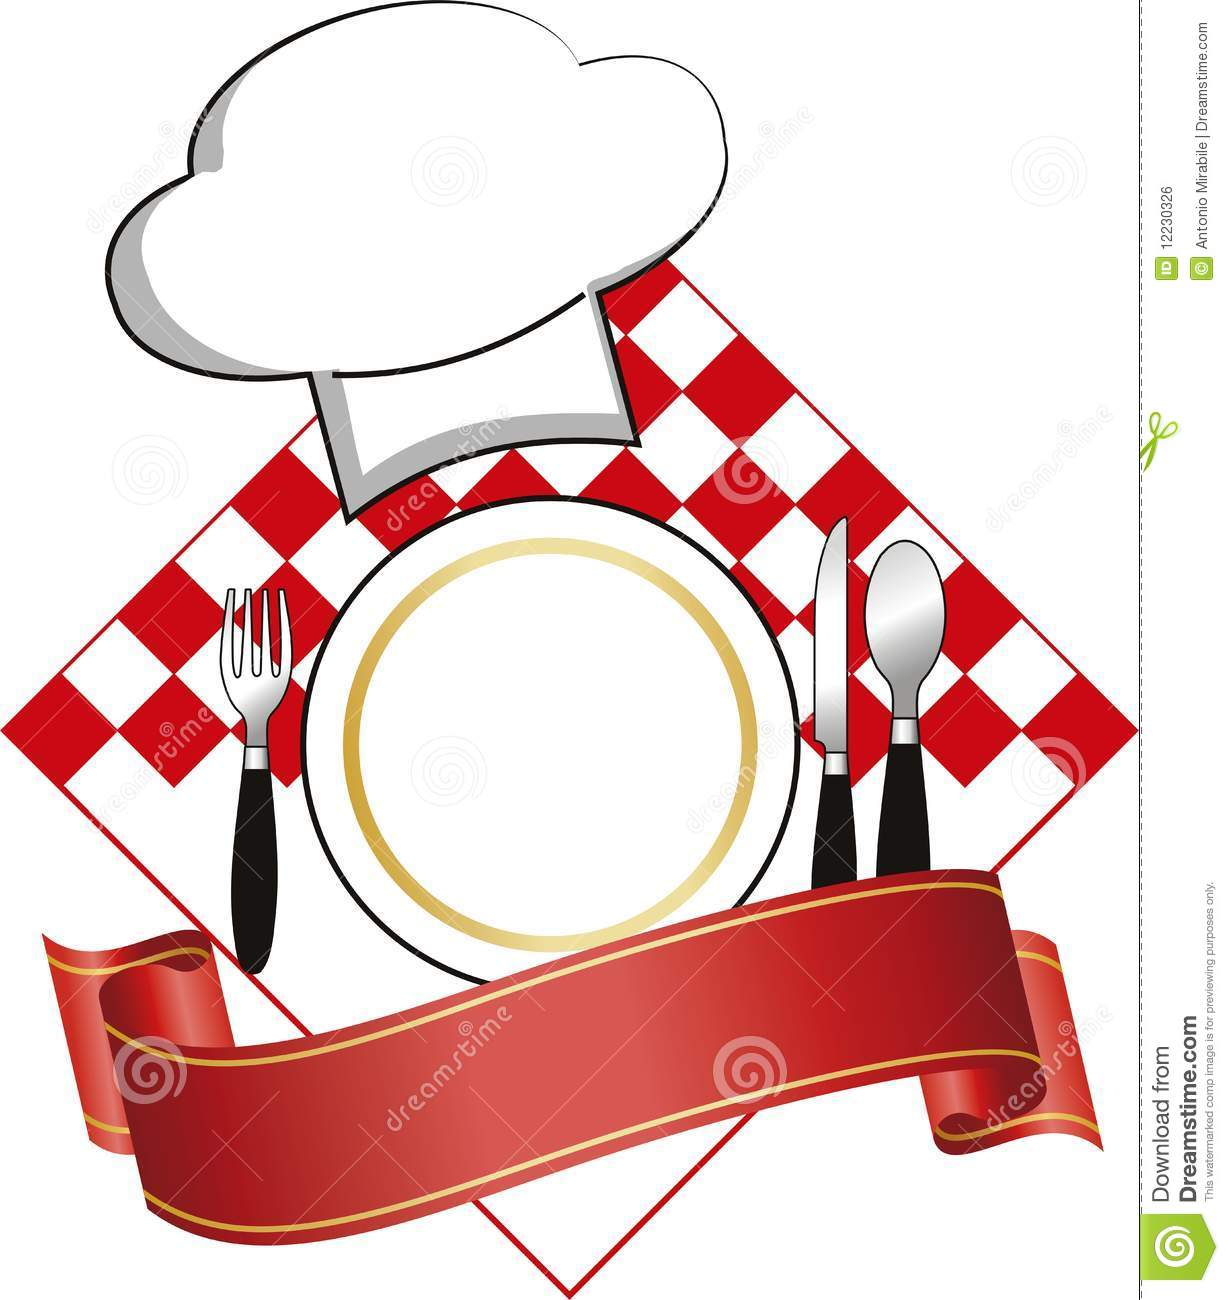 restaurant logo stock vector image of graphic  cool restaurant clipart images free restaurant clipart images